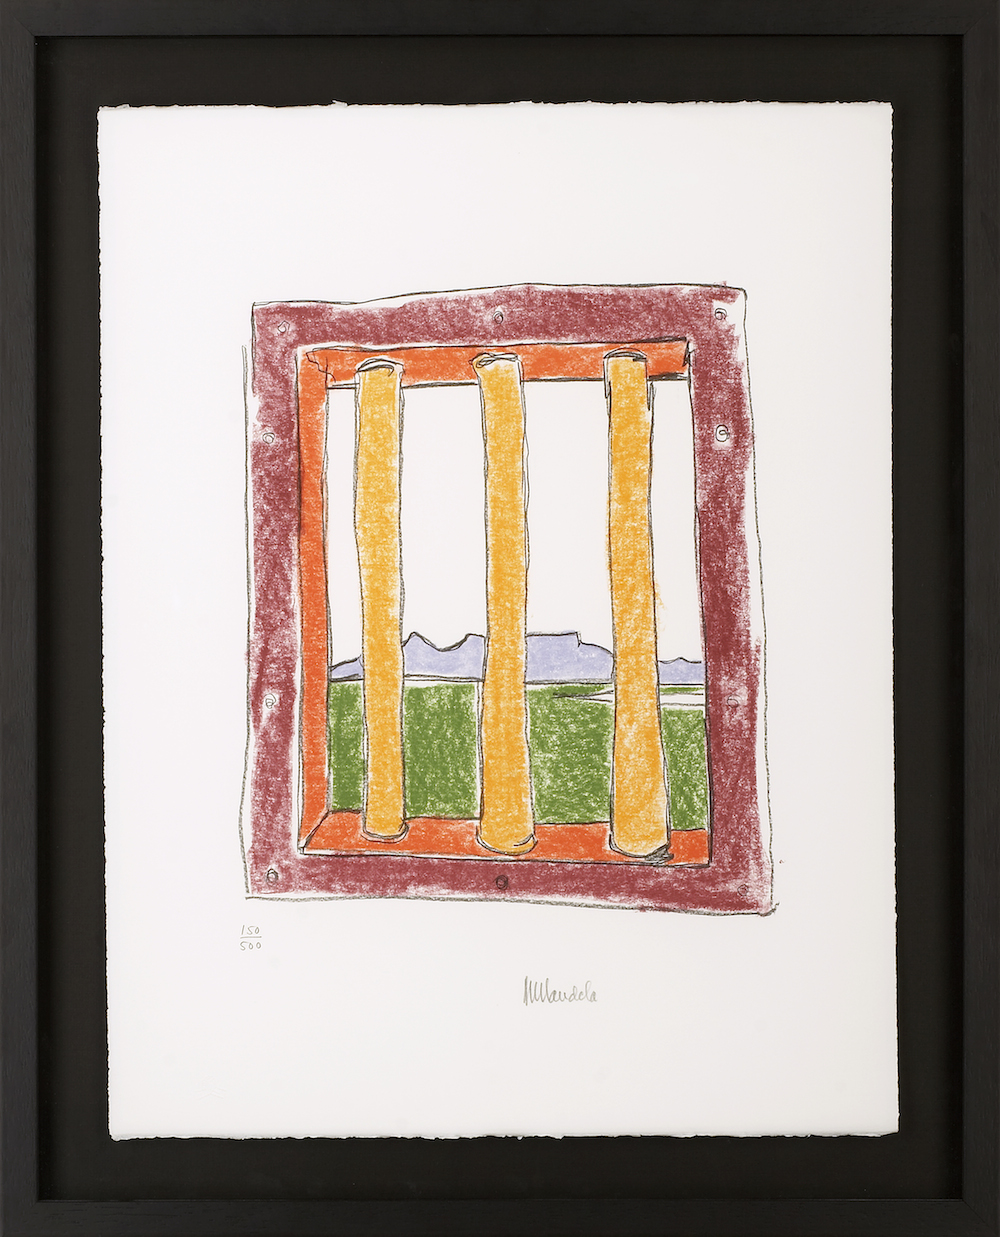 """The Window (c) Nelson Mandela, Limited edition signed lithograph, 21.5 x 19.5""""lithograph, 21.5 x 19.5"""""""